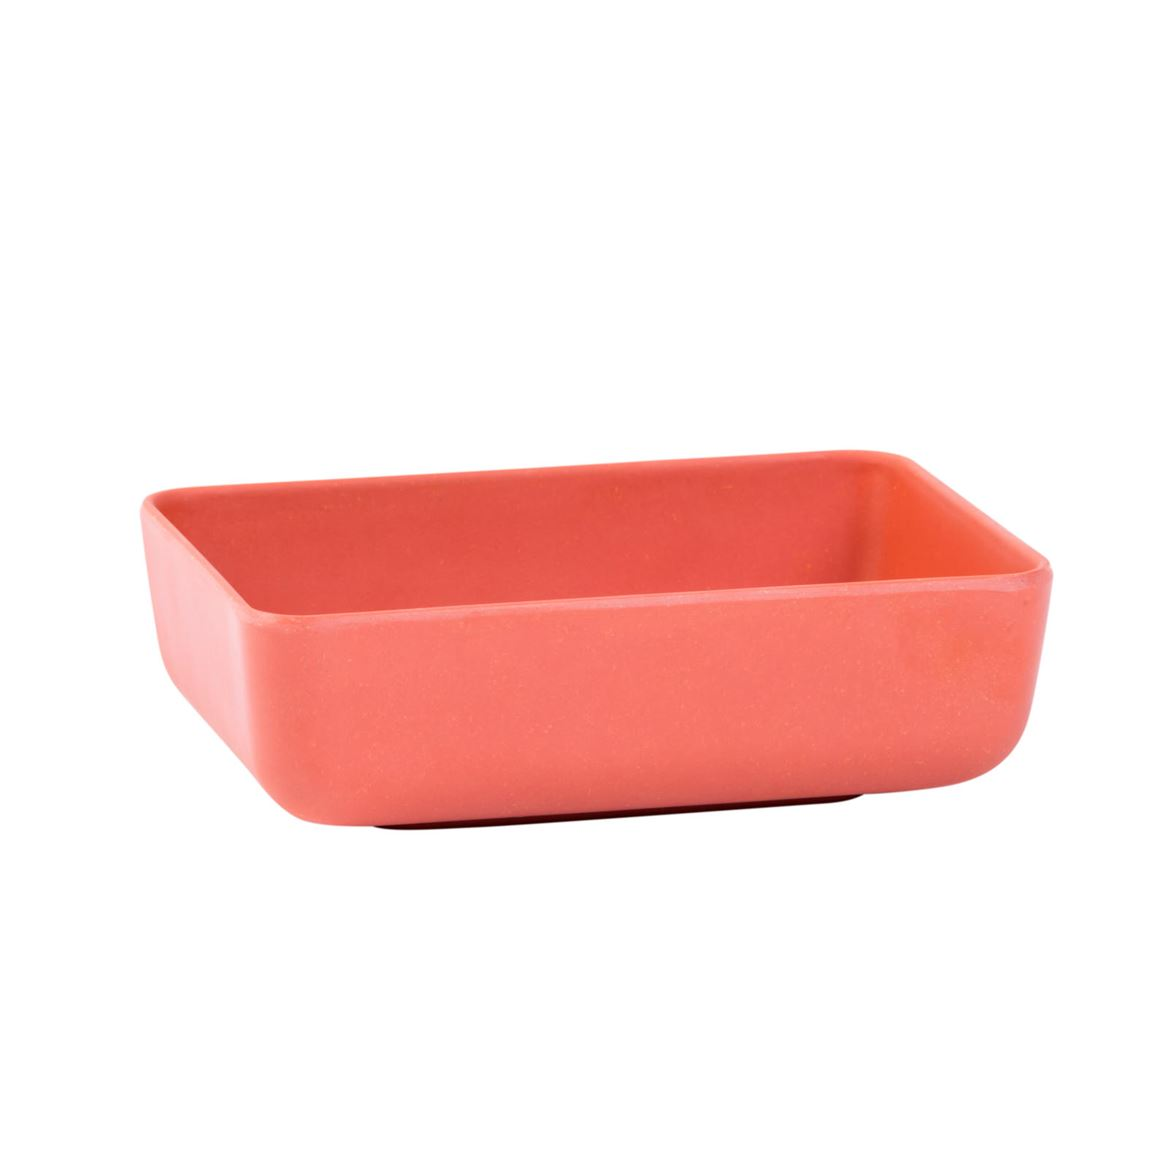 ELEMENTS Bowl oranje H 4.5 x B 14 x D 10 cm_elements-bowl-oranje-h-4-5-x-b-14-x-d-10-cm